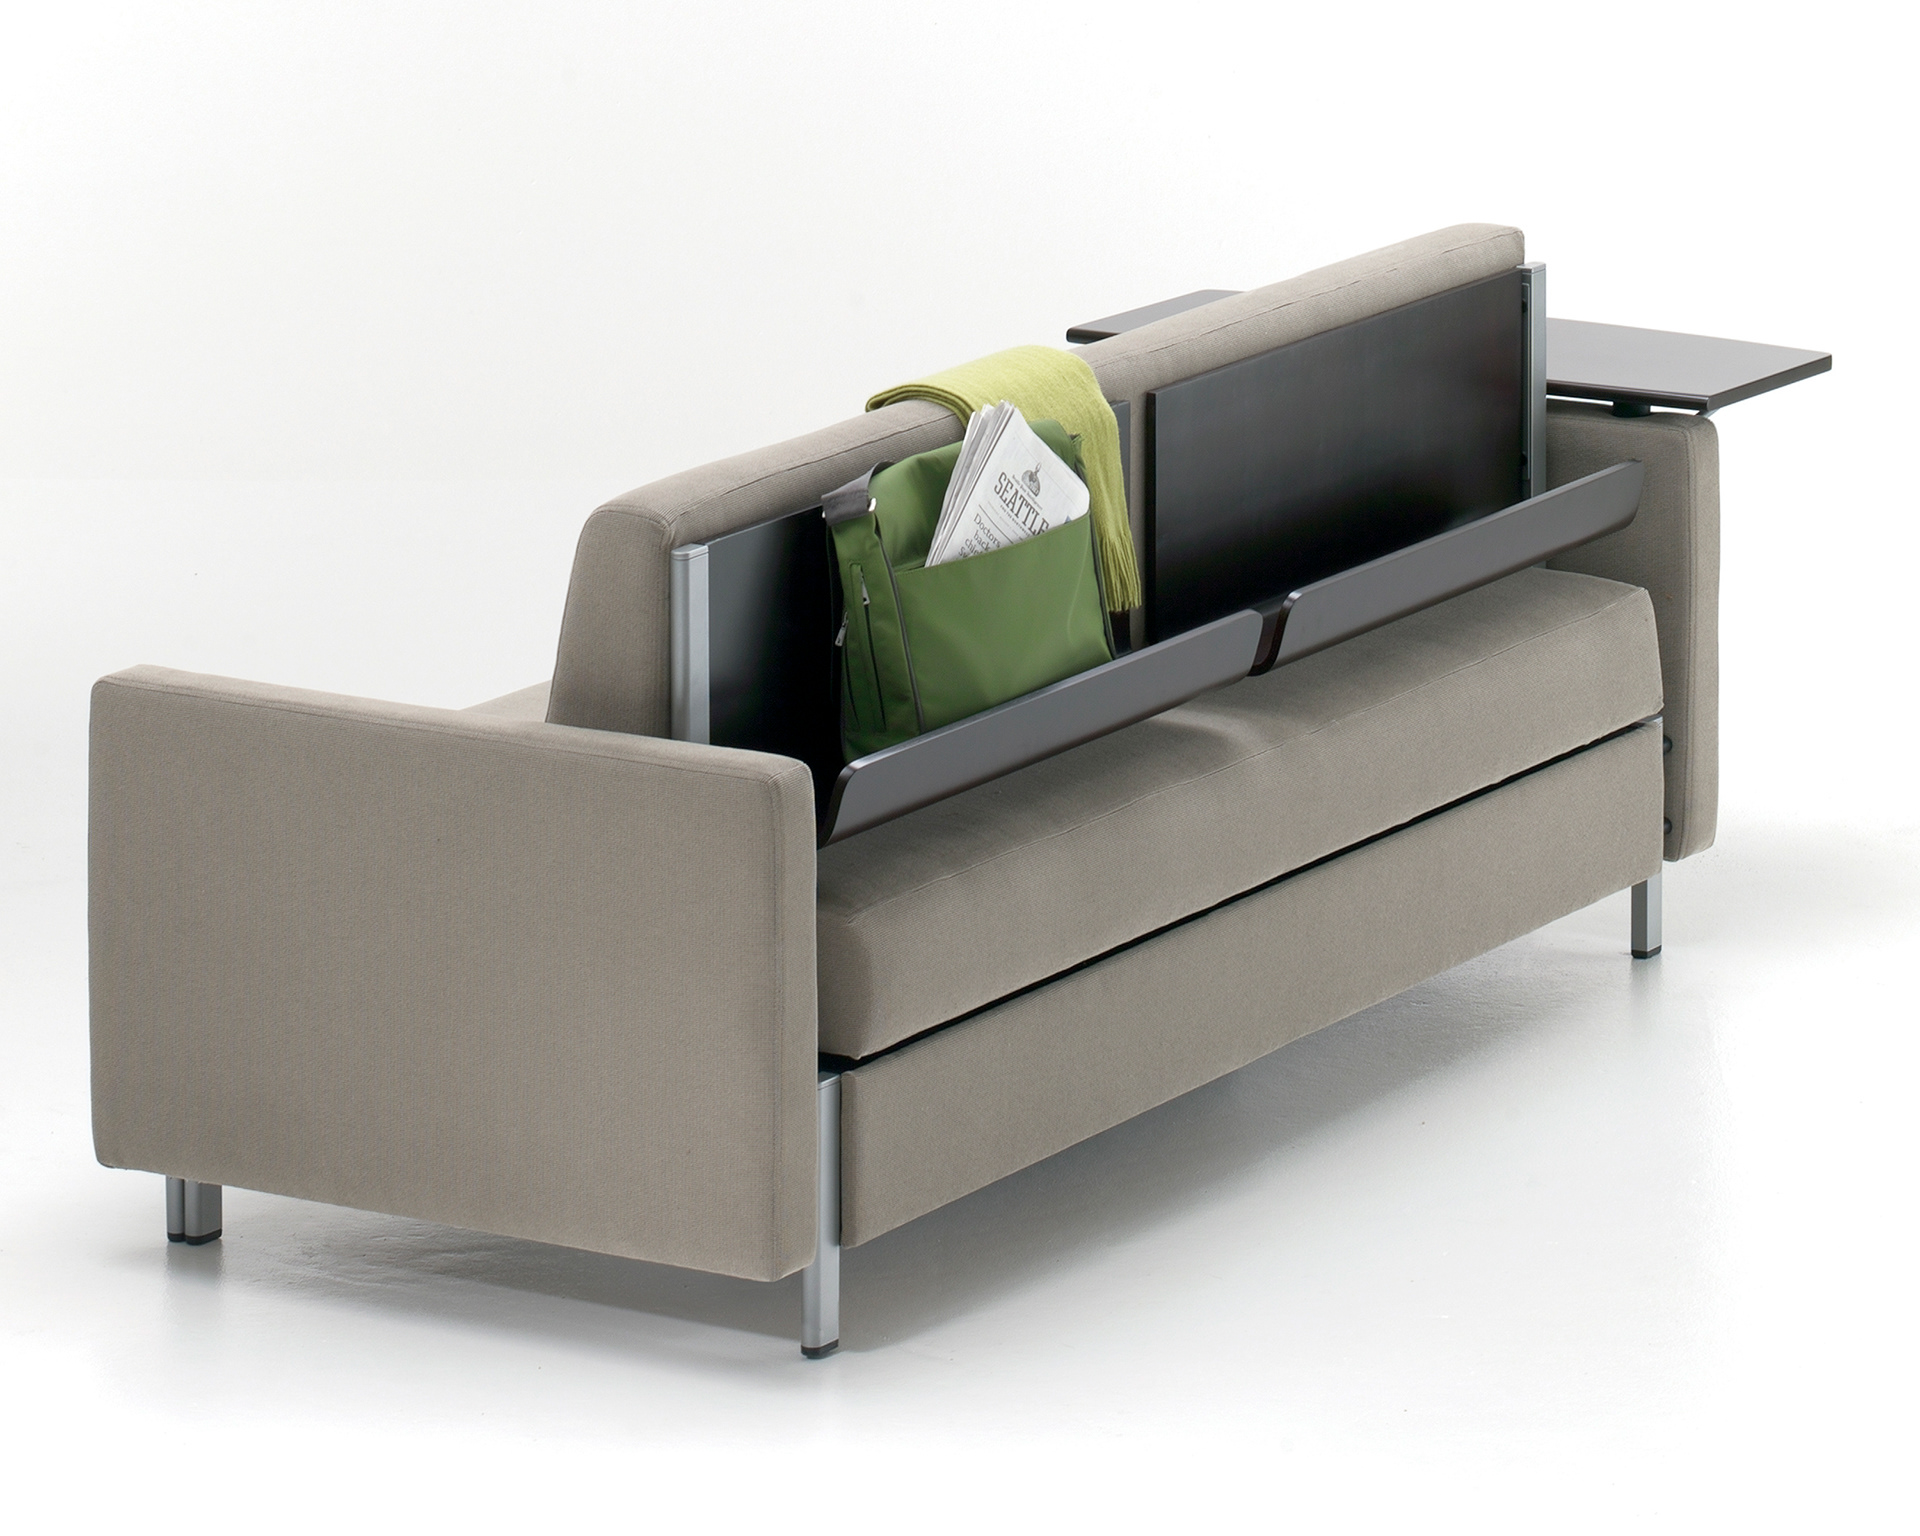 table products adjustable mfg sh couch treatment byhierarchy back shelf winco llc with recovery